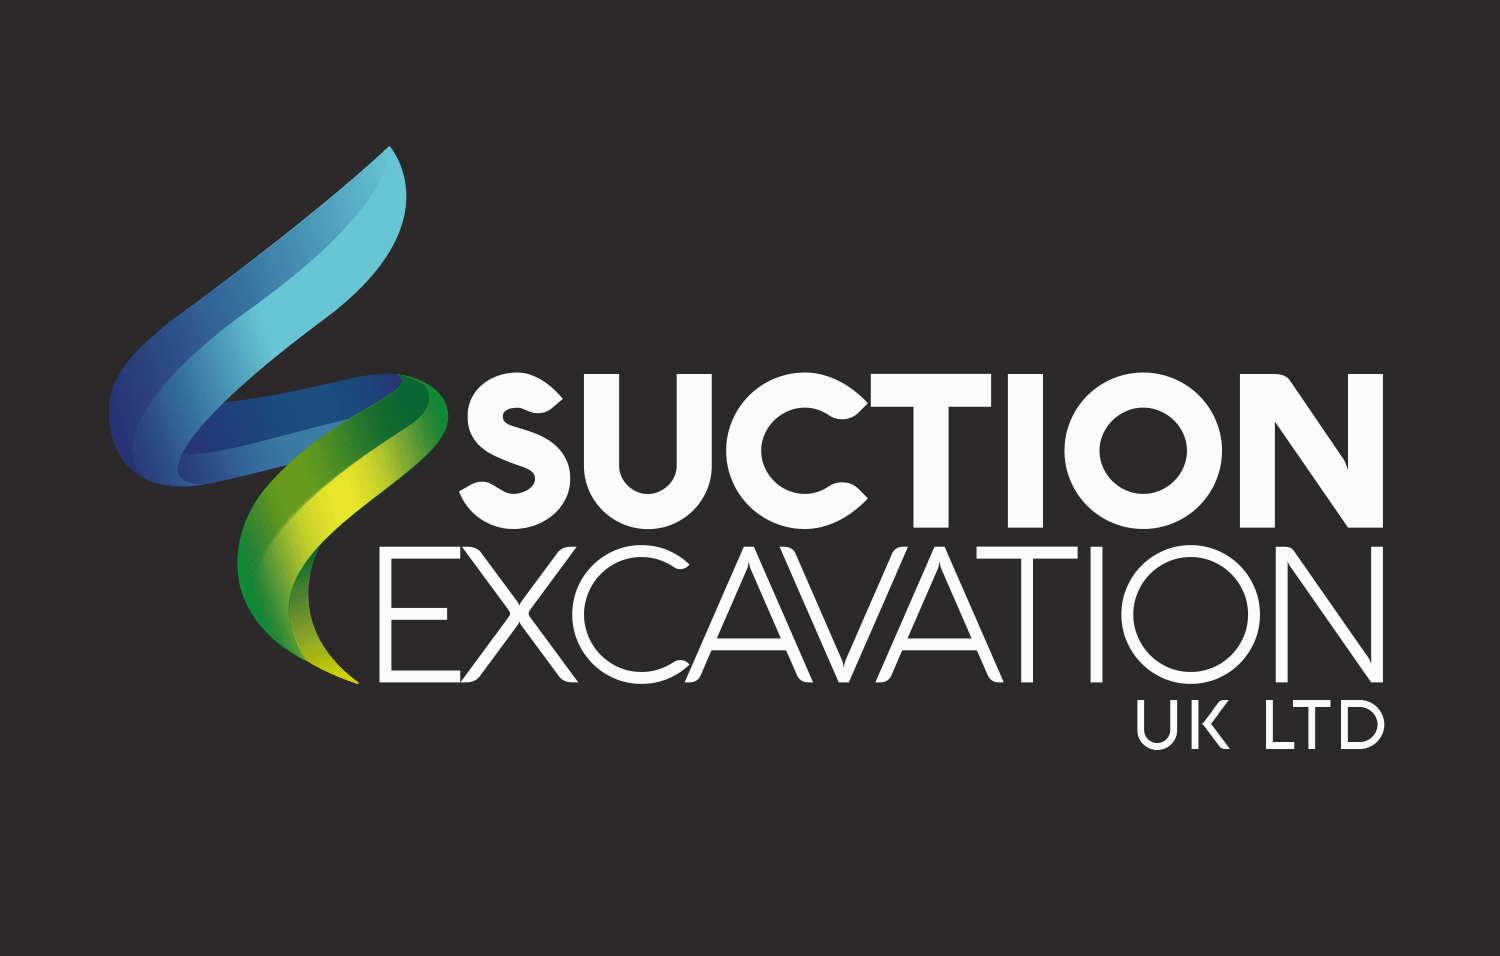 Suction Excavation logo explanation